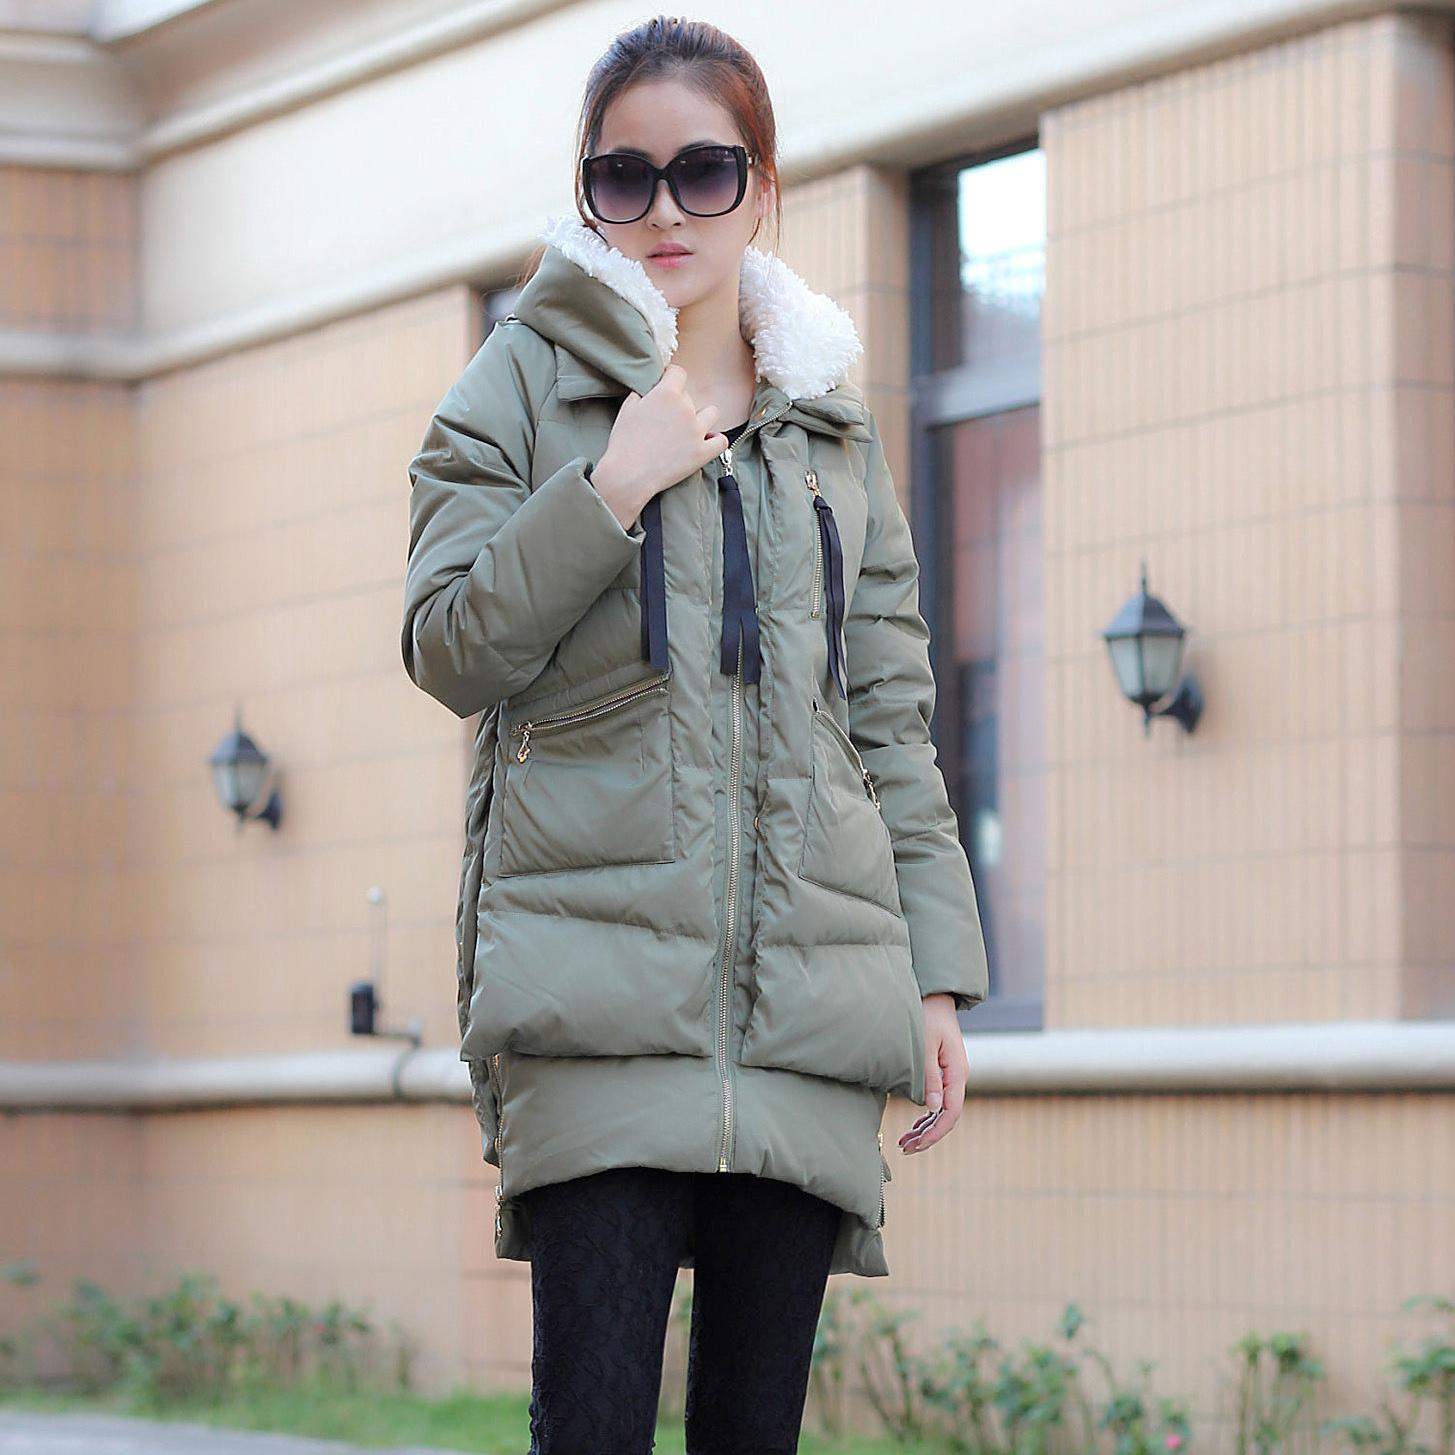 2013 New Authentic Military Jacket WomenS Oversized Long Thick Winter Warm Down Clothes Female Loose Wide-Waisted Outwear H1228